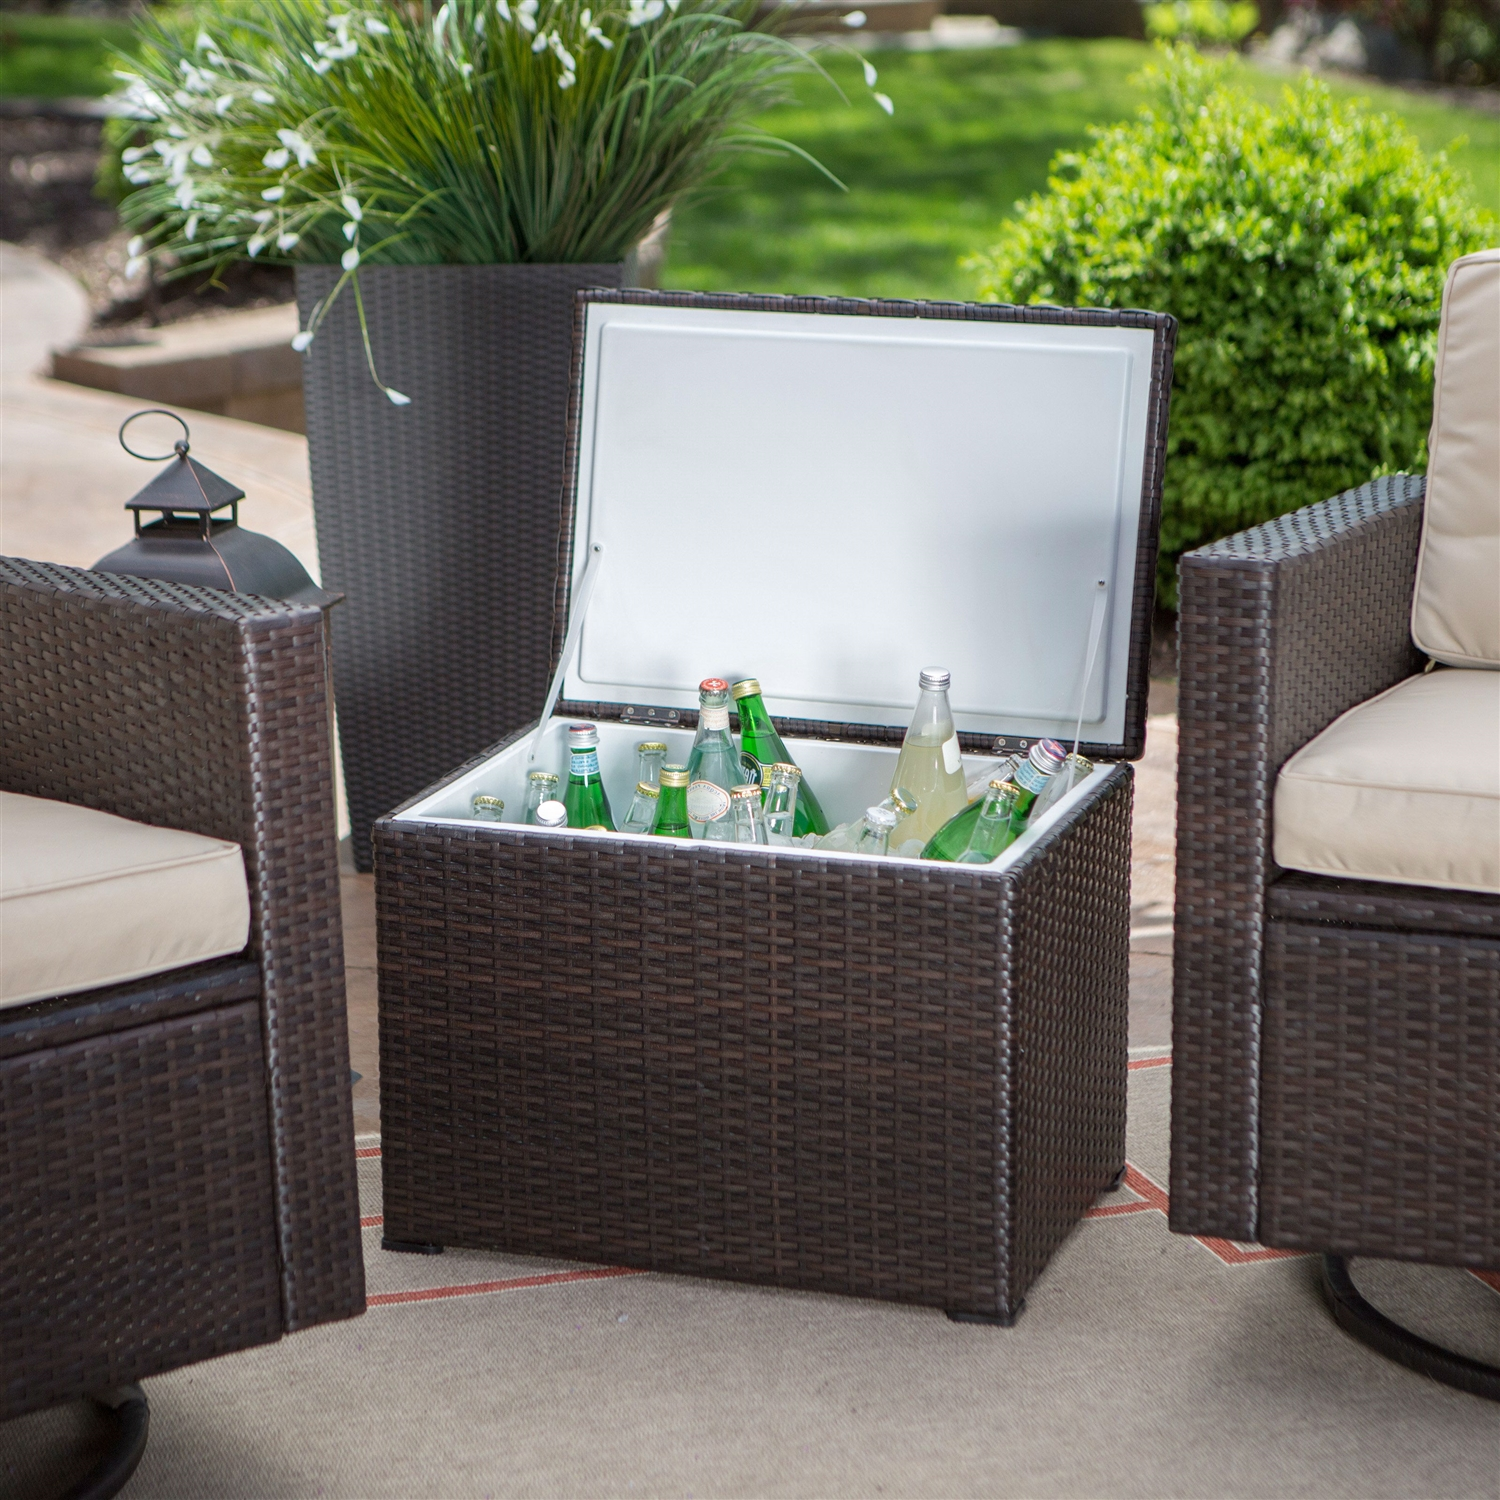 outdoor wicker resin piece patio furniture set with chairs and side table cooler retail gray lamps mat design world market mirror lights emerald green accent retro sideboard